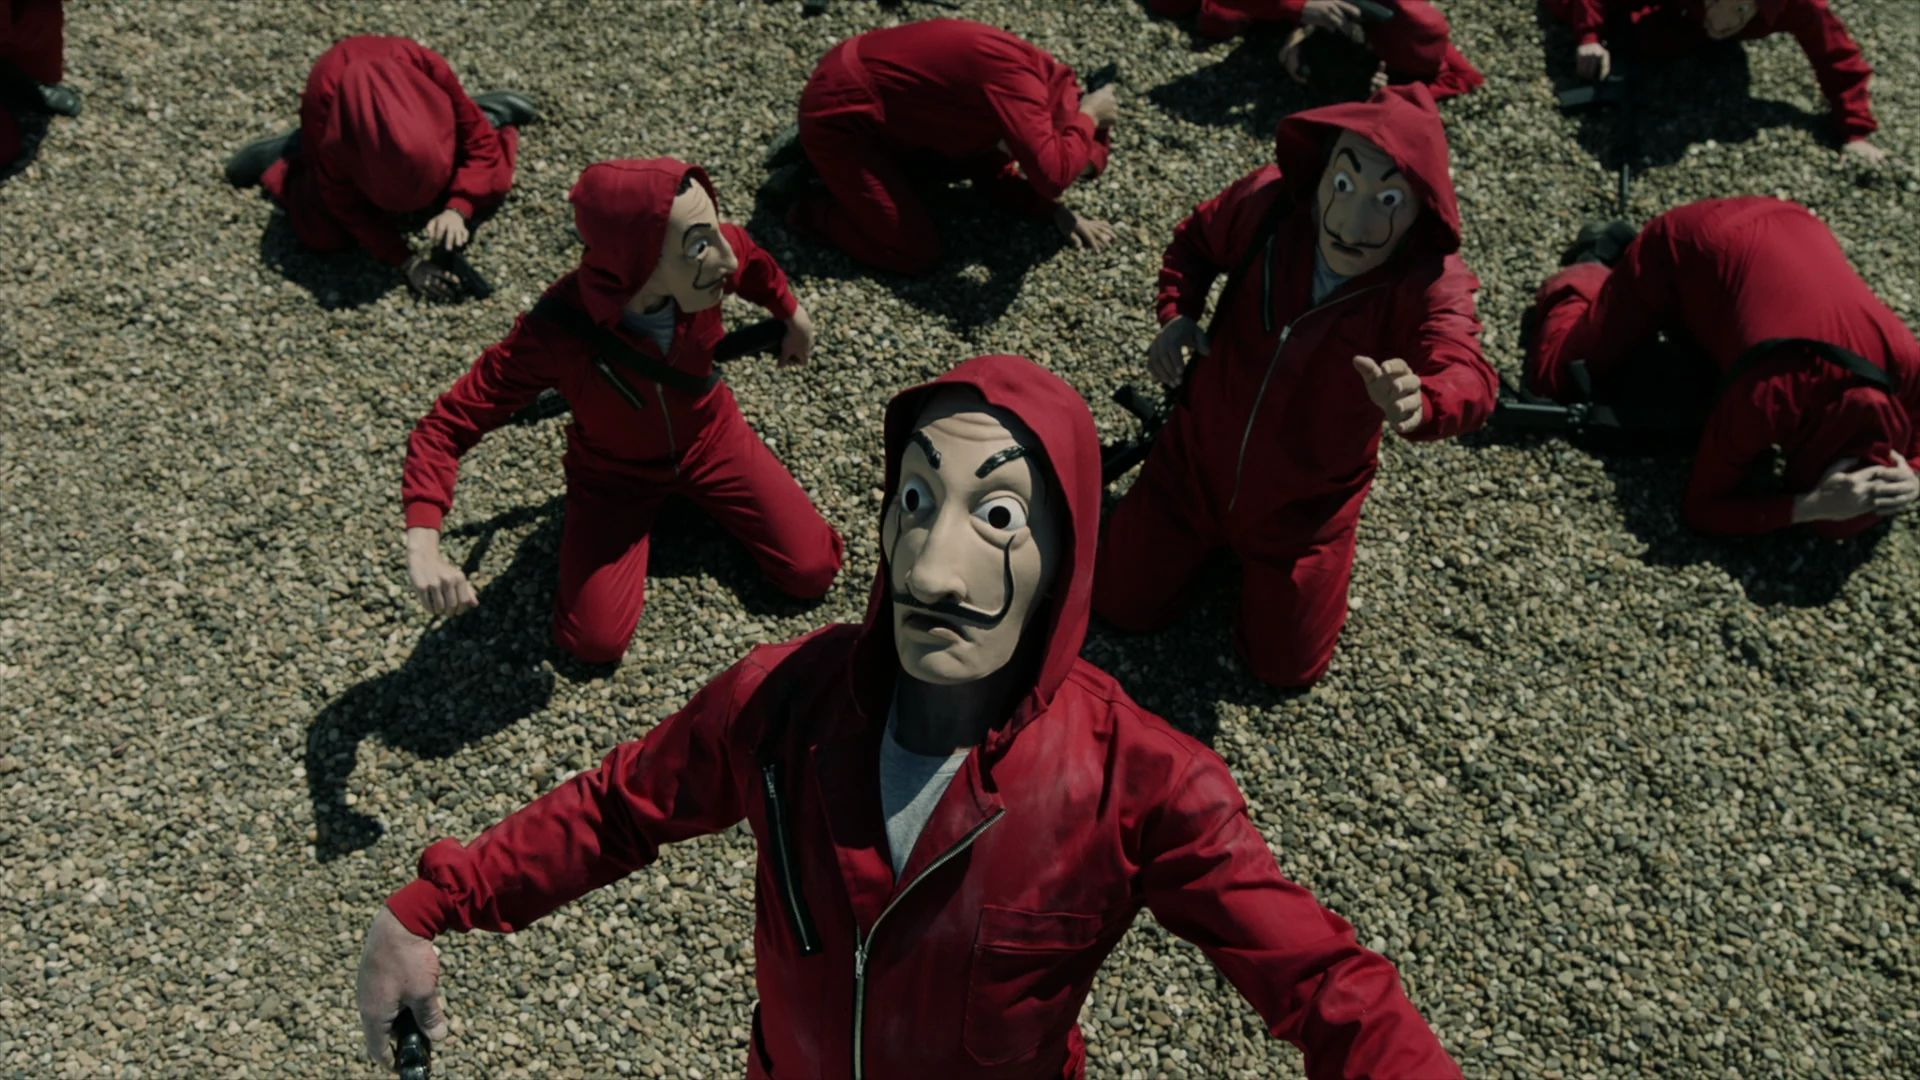 La Casa De Papel Money Heist Sezonul 1 Online Hd Watch Tv